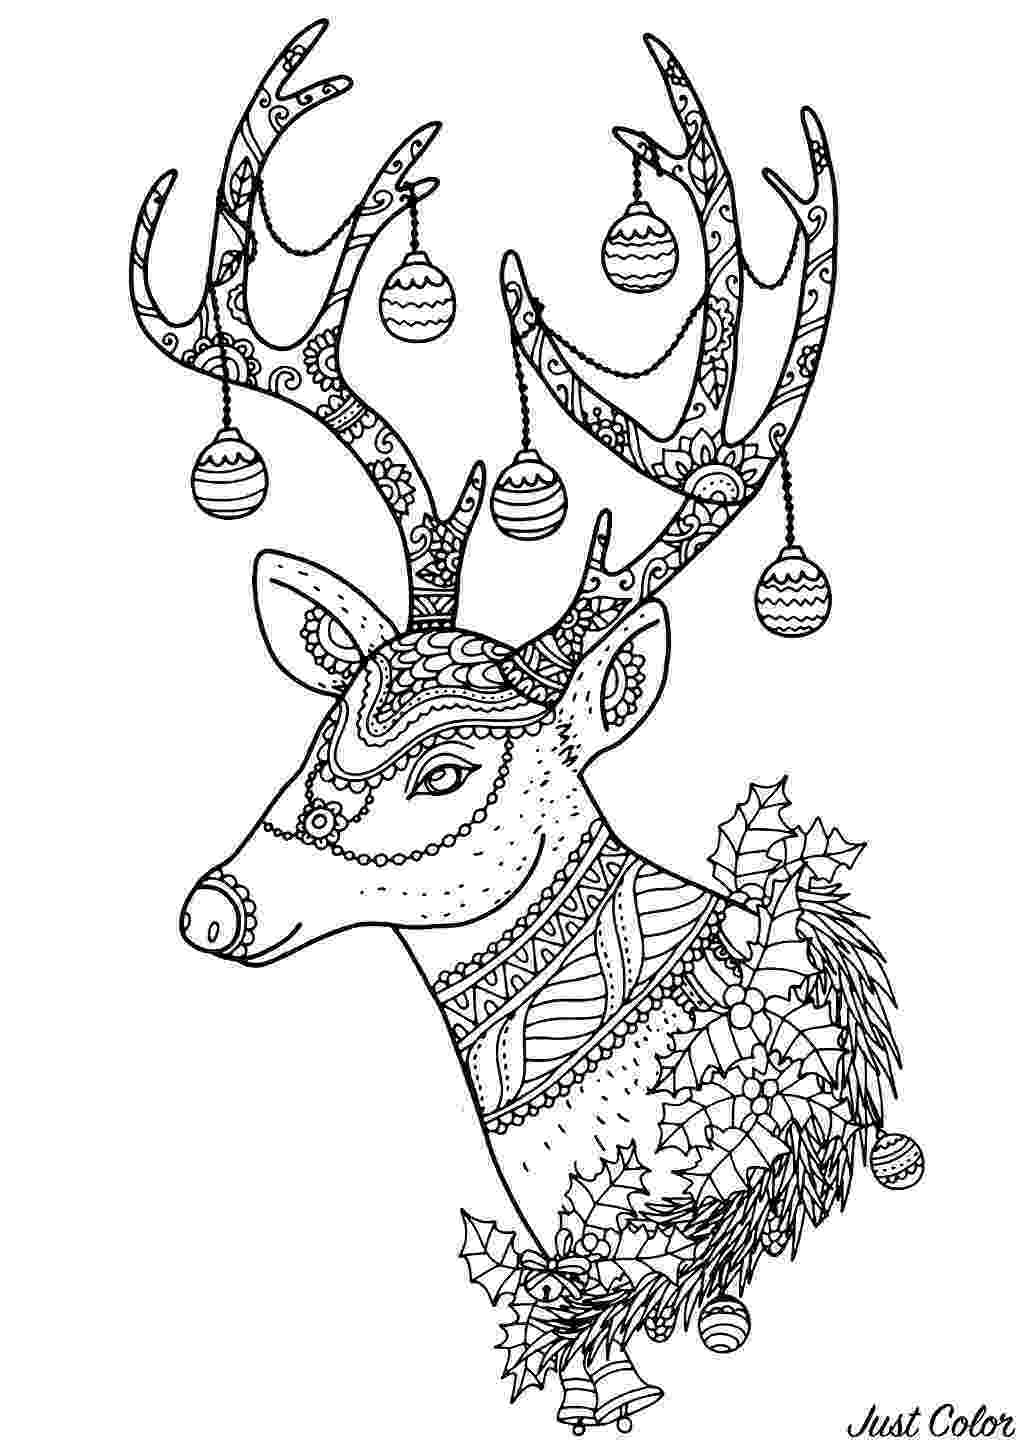 colouring pages christmas reindeer 13 christmas reindeer coloring pages gtgt disney coloring pages pages reindeer colouring christmas